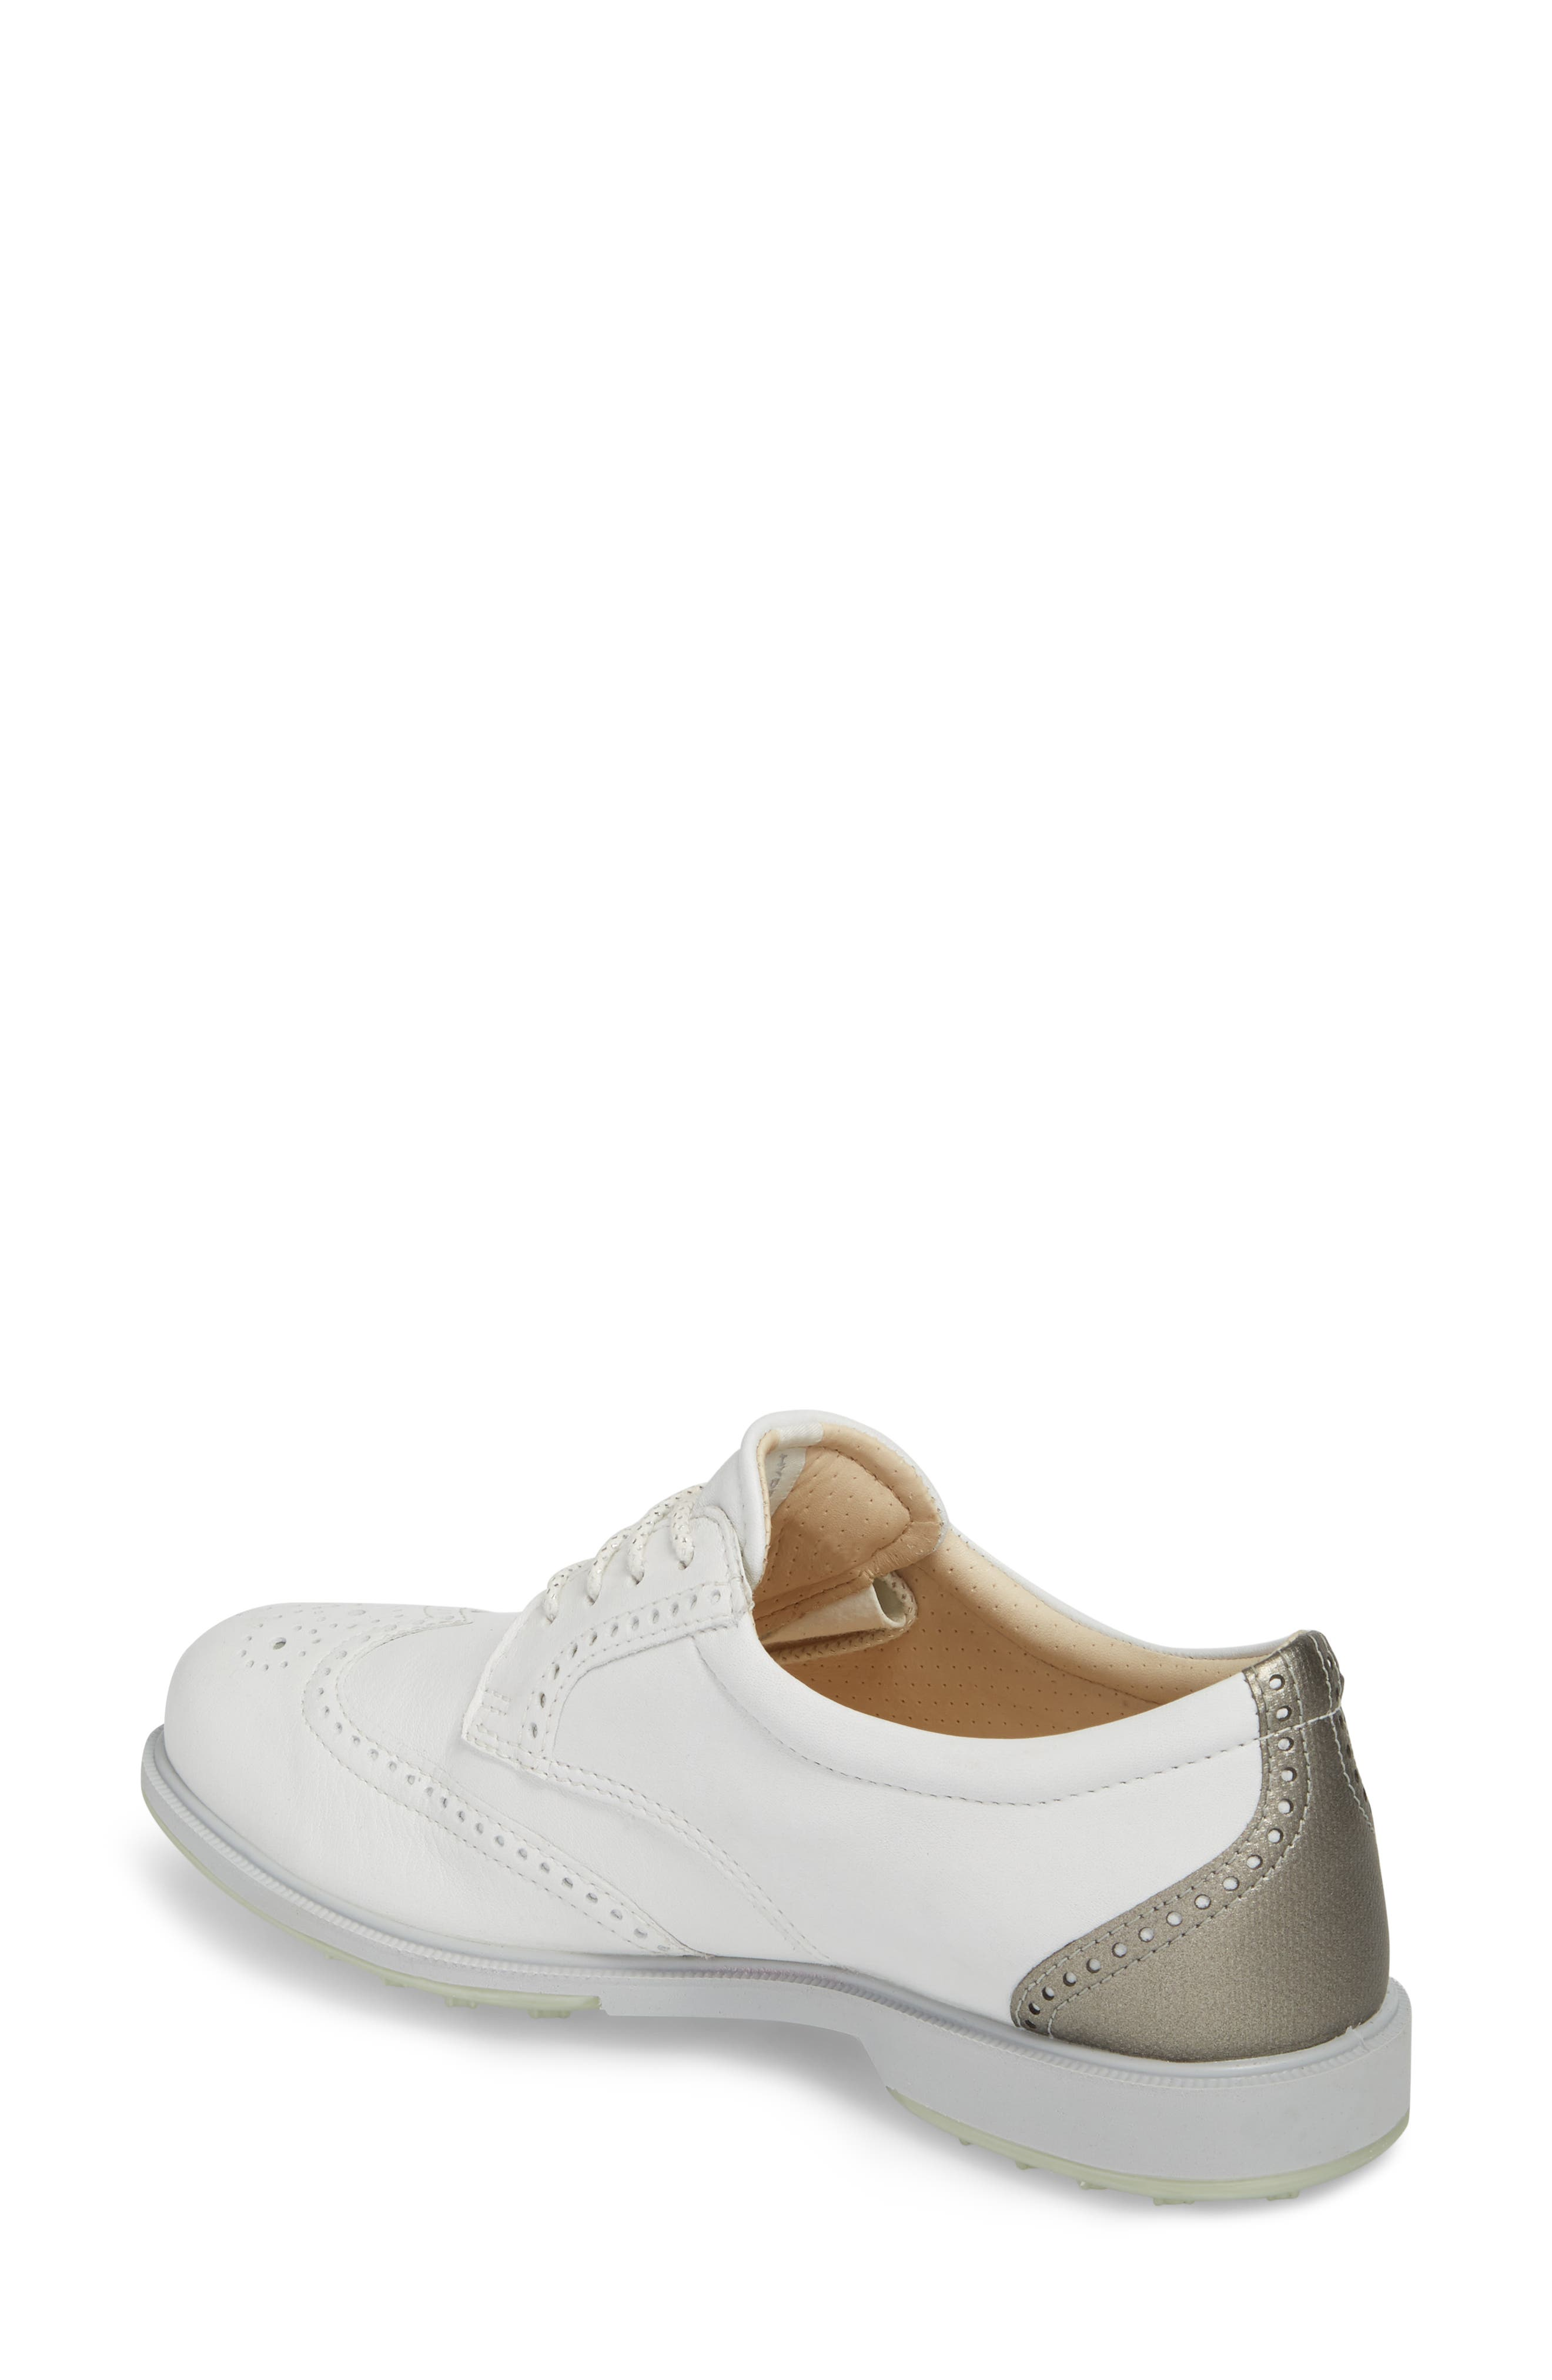 'Tour' Hybrid Wingtip Golf Shoe,                             Alternate thumbnail 2, color,                             WHITE LEATHER/ GREY